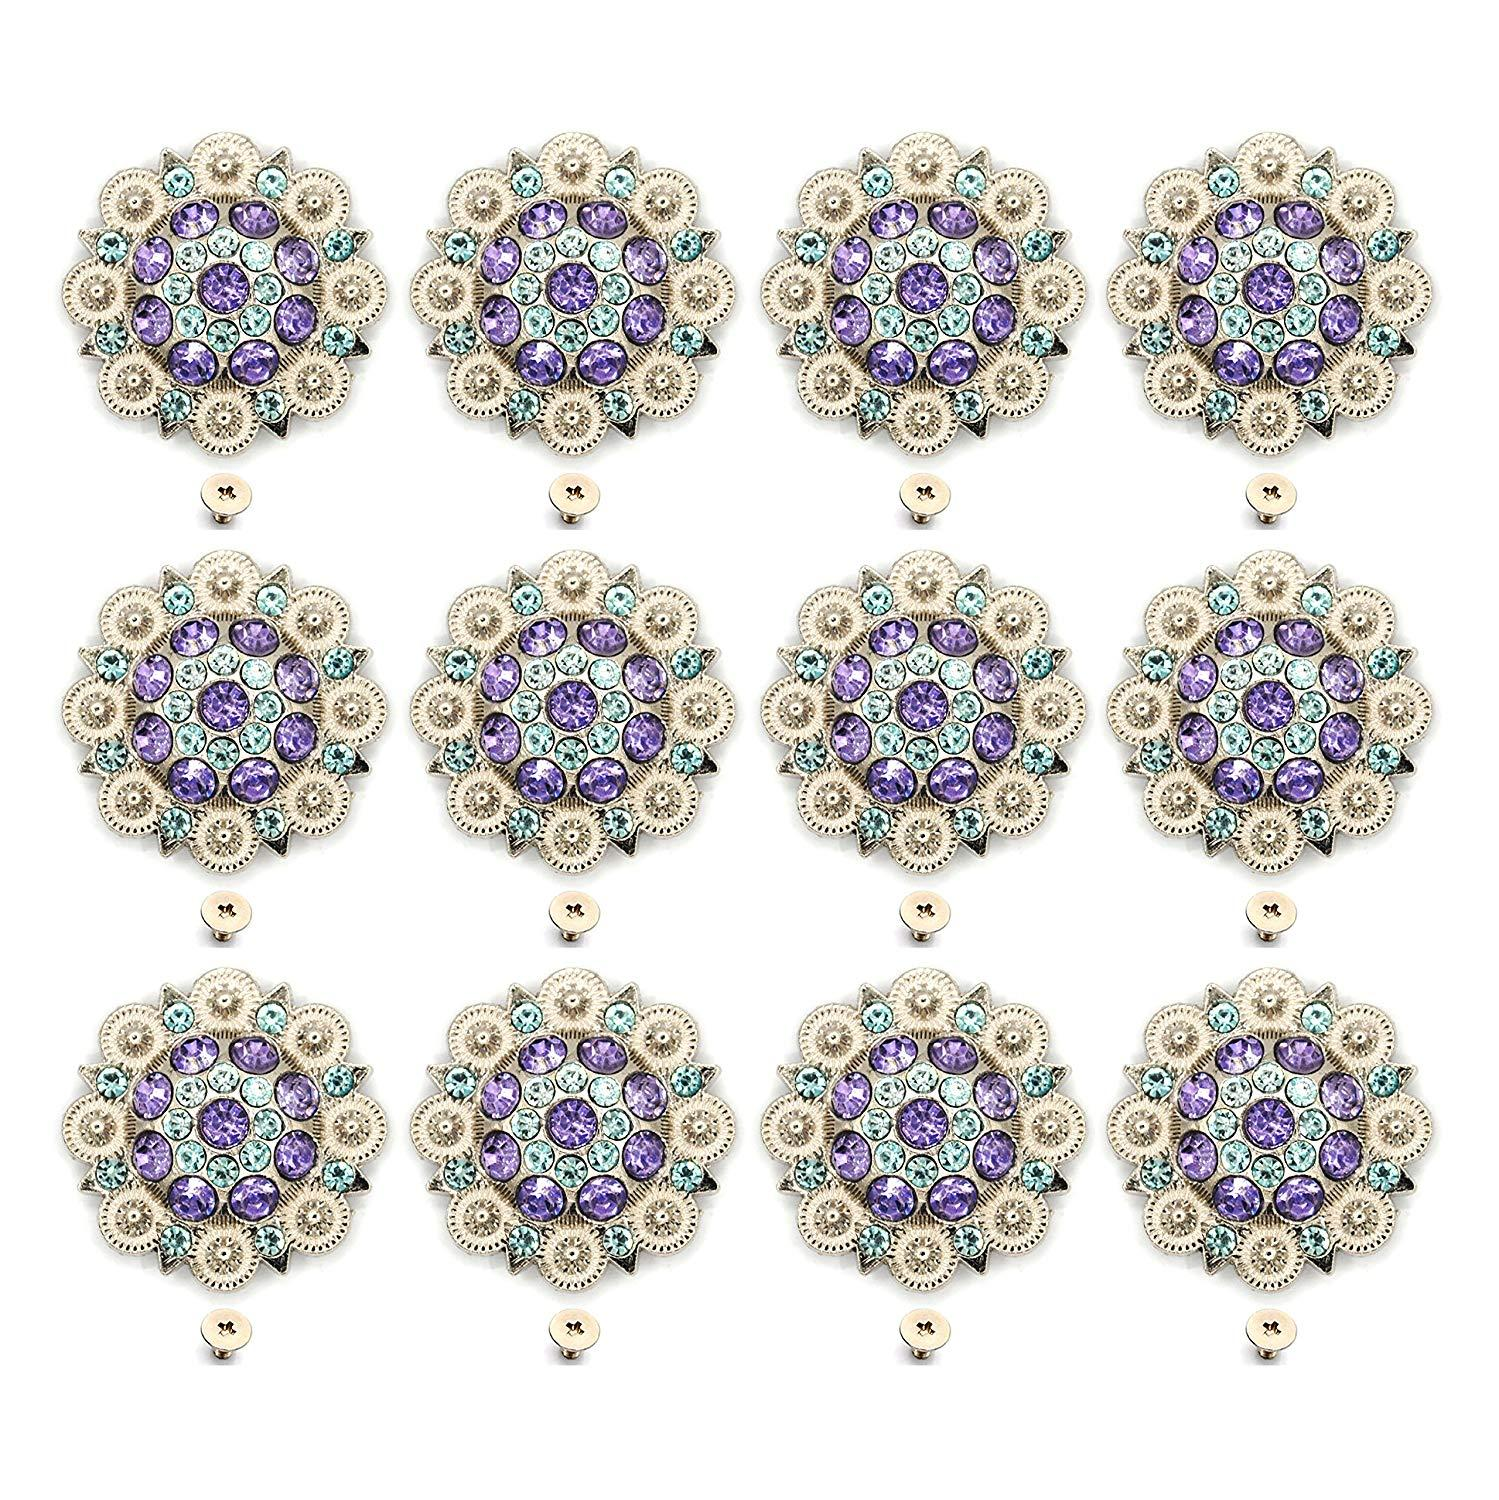 12pcs/lots Ligh Purple Diameter 3.7CM Metal Flower Conchos White Rhinestone Decoration Belt Accessories Accessories